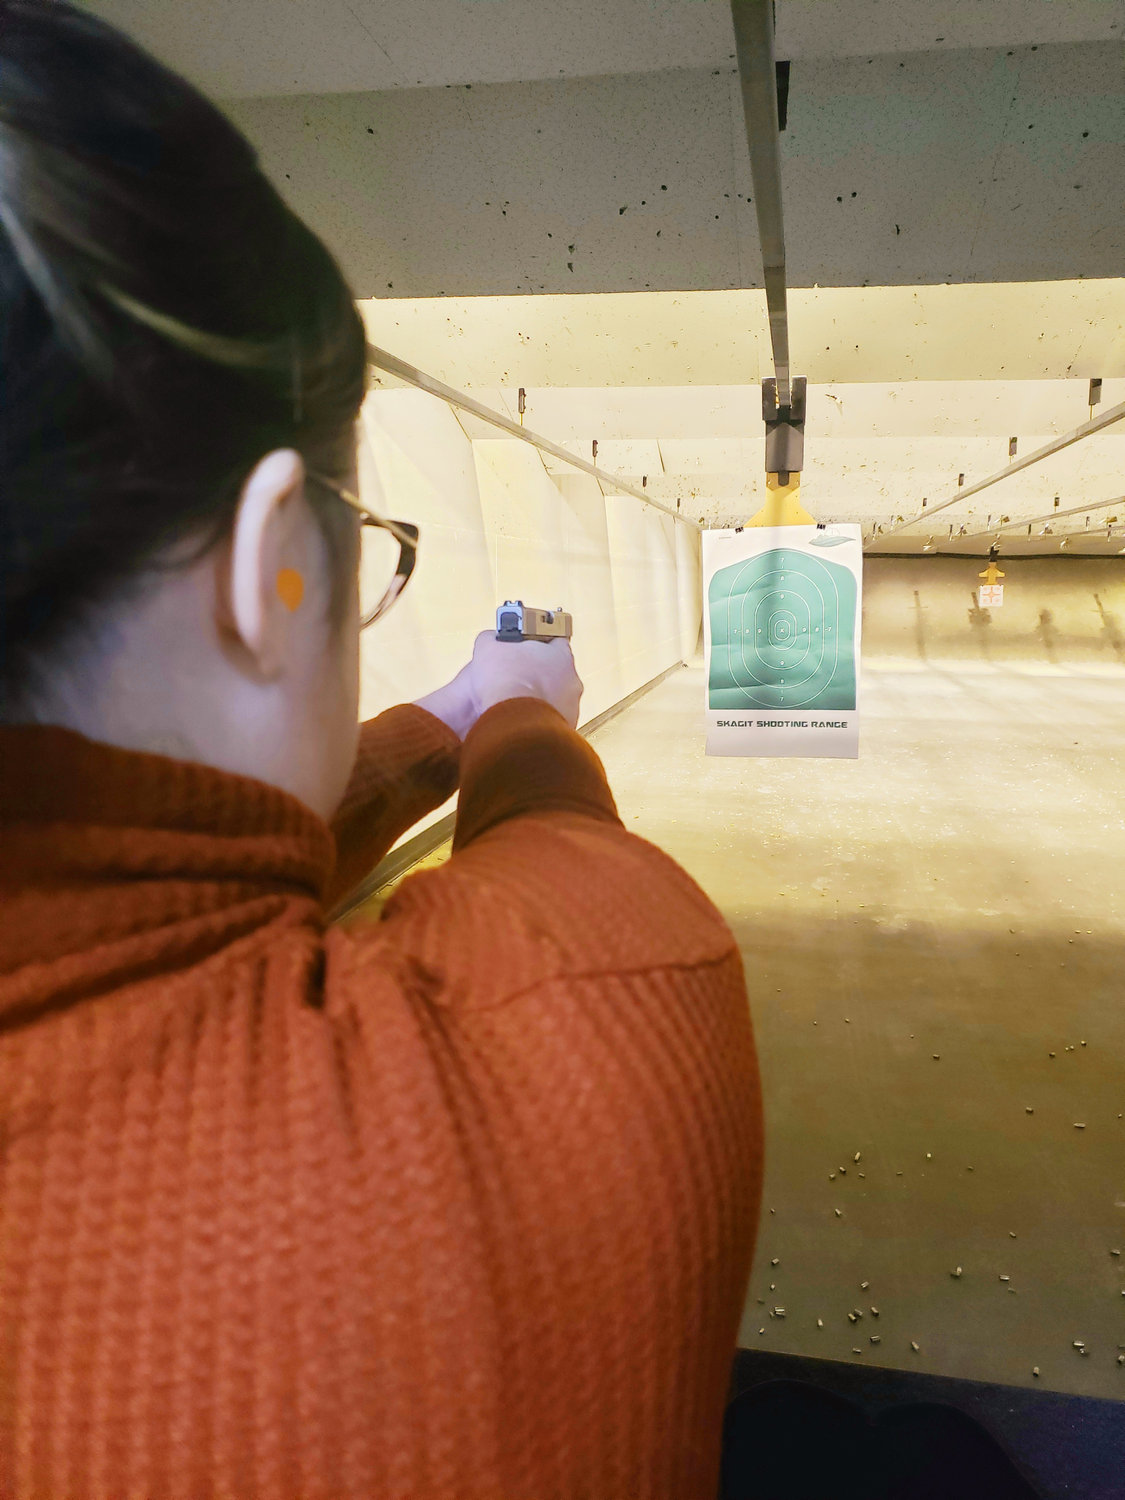 Women's Concealed Carry Lifestyle 101